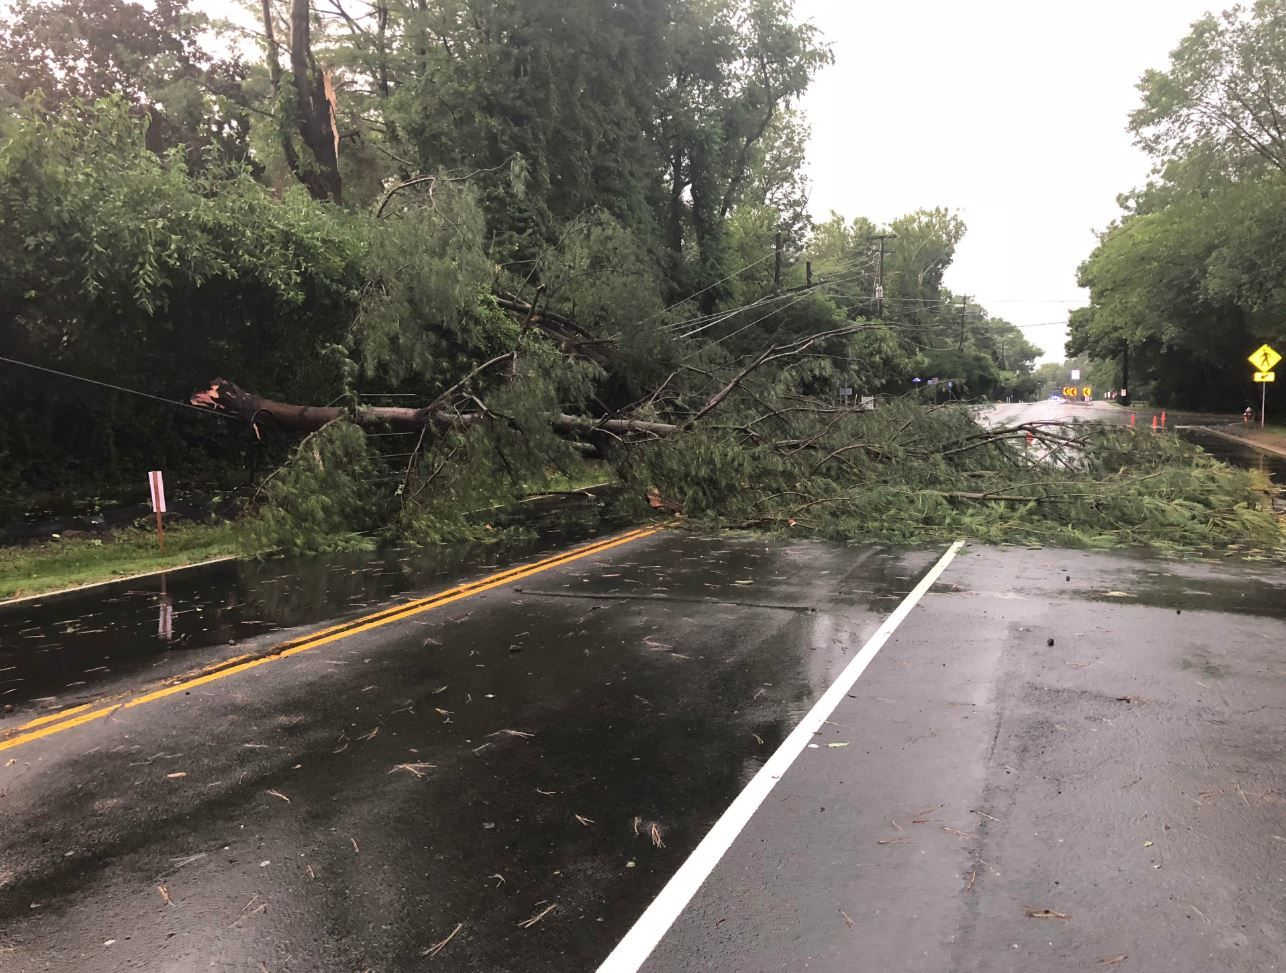 A downed tree closes a road in the City of Fairfax in Virginia, on Tuesday, July 2, 2019. (Courtesy Fairfax City police)